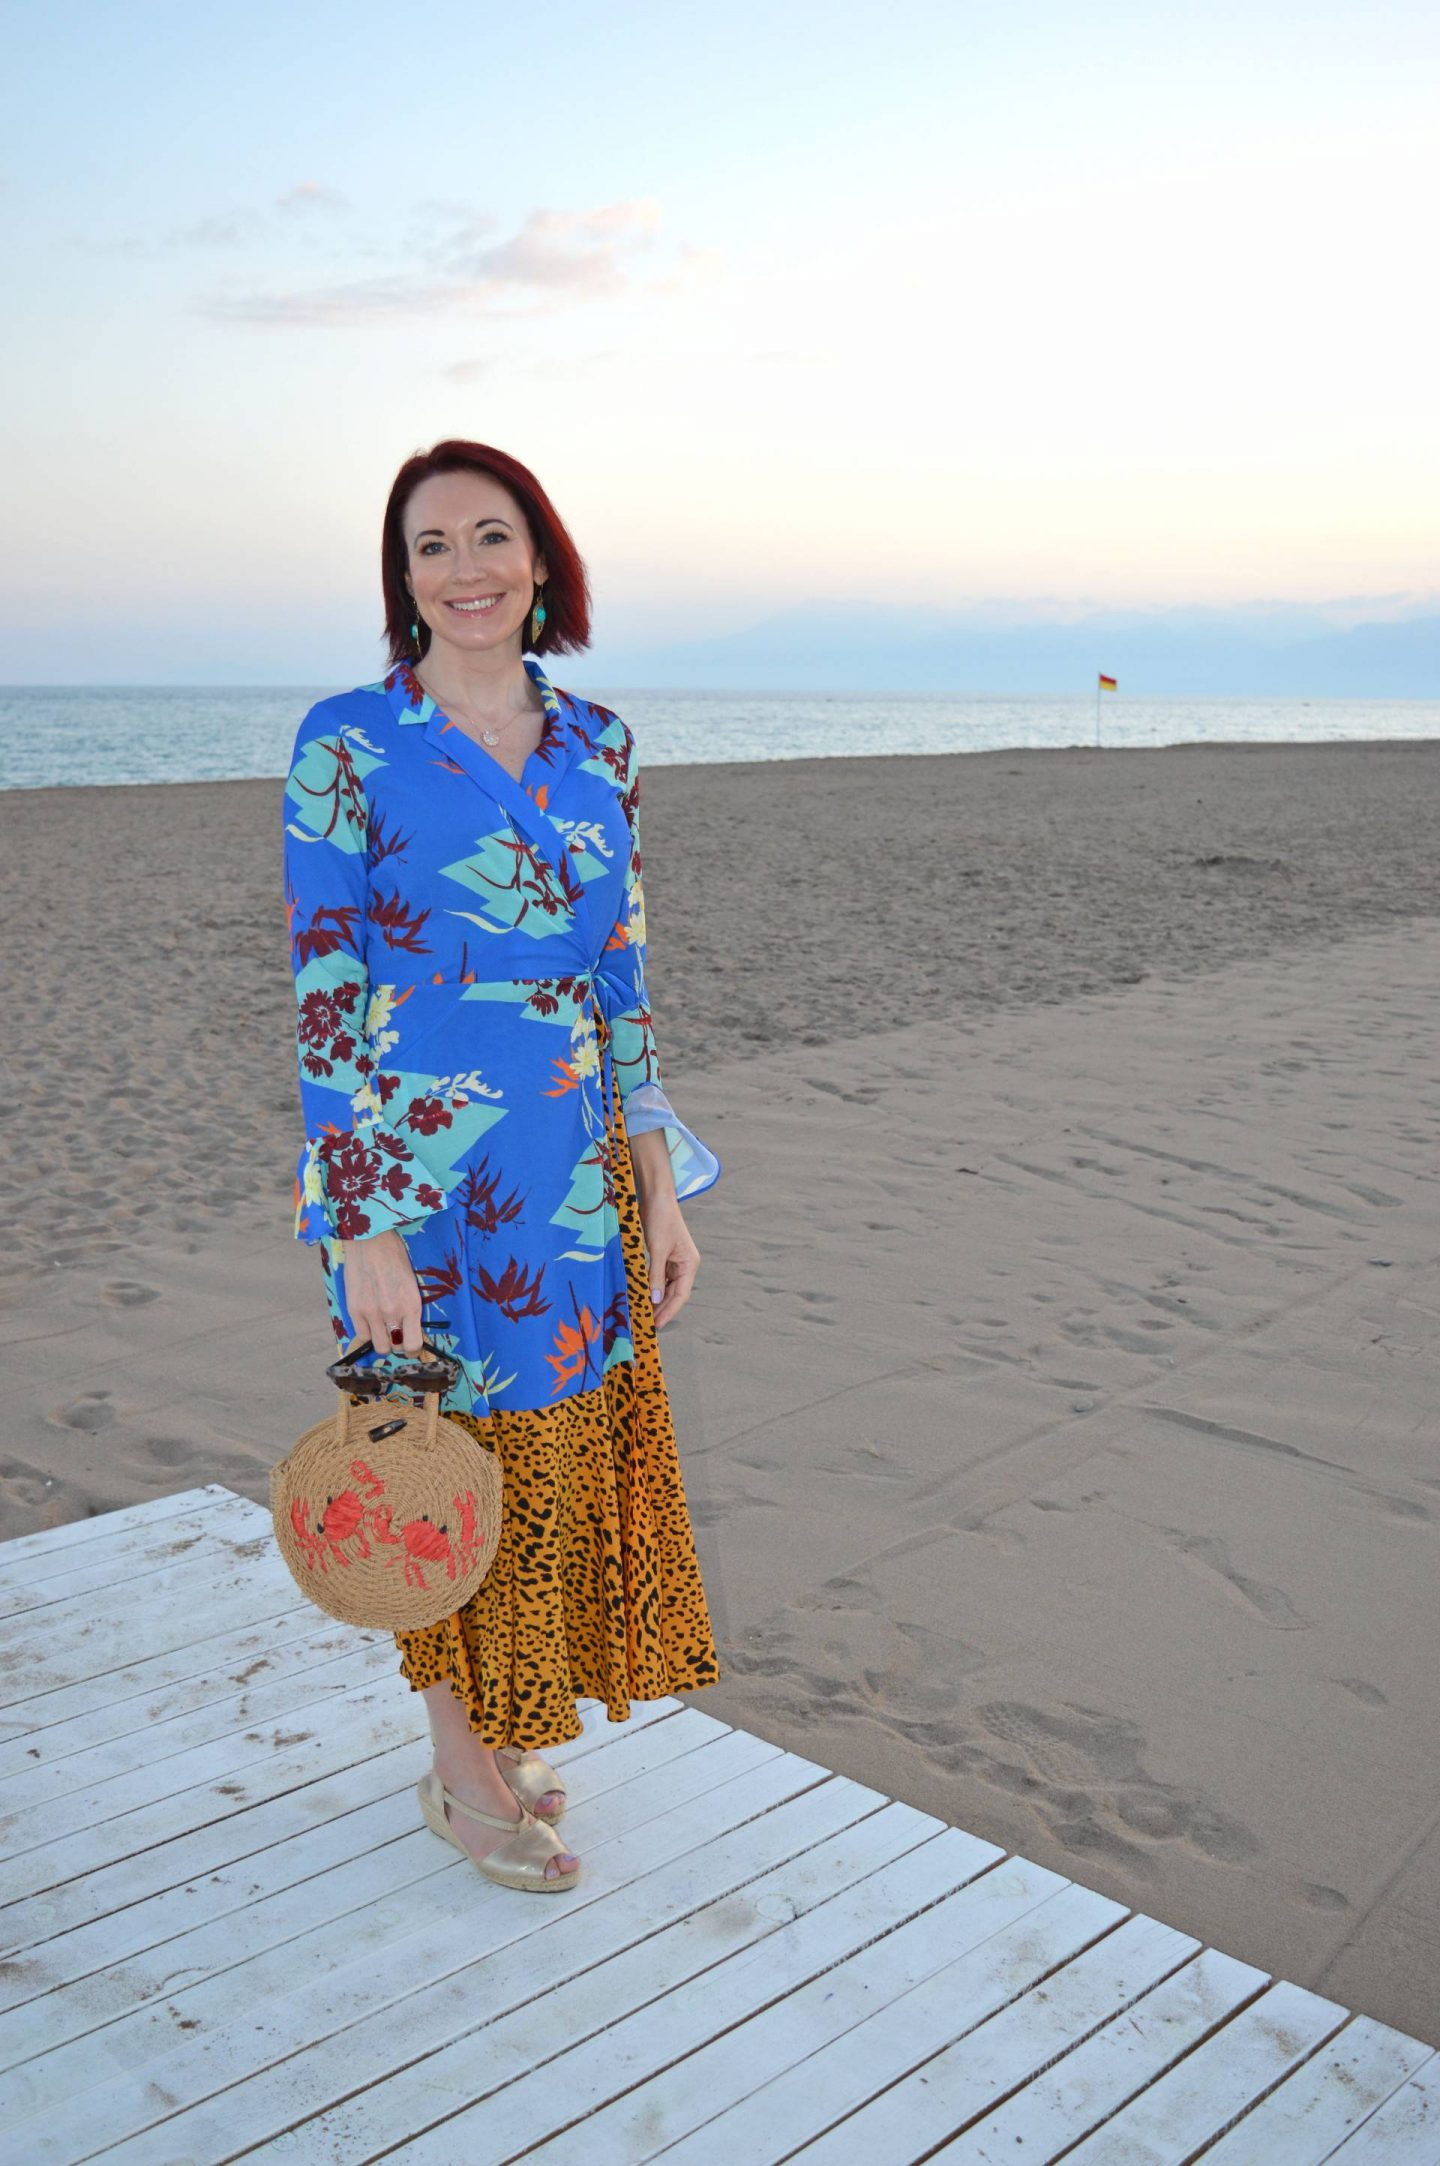 Asos Mixed Print Maxi Dress, Topshop straw crab motif bag, Lara beach Antalya